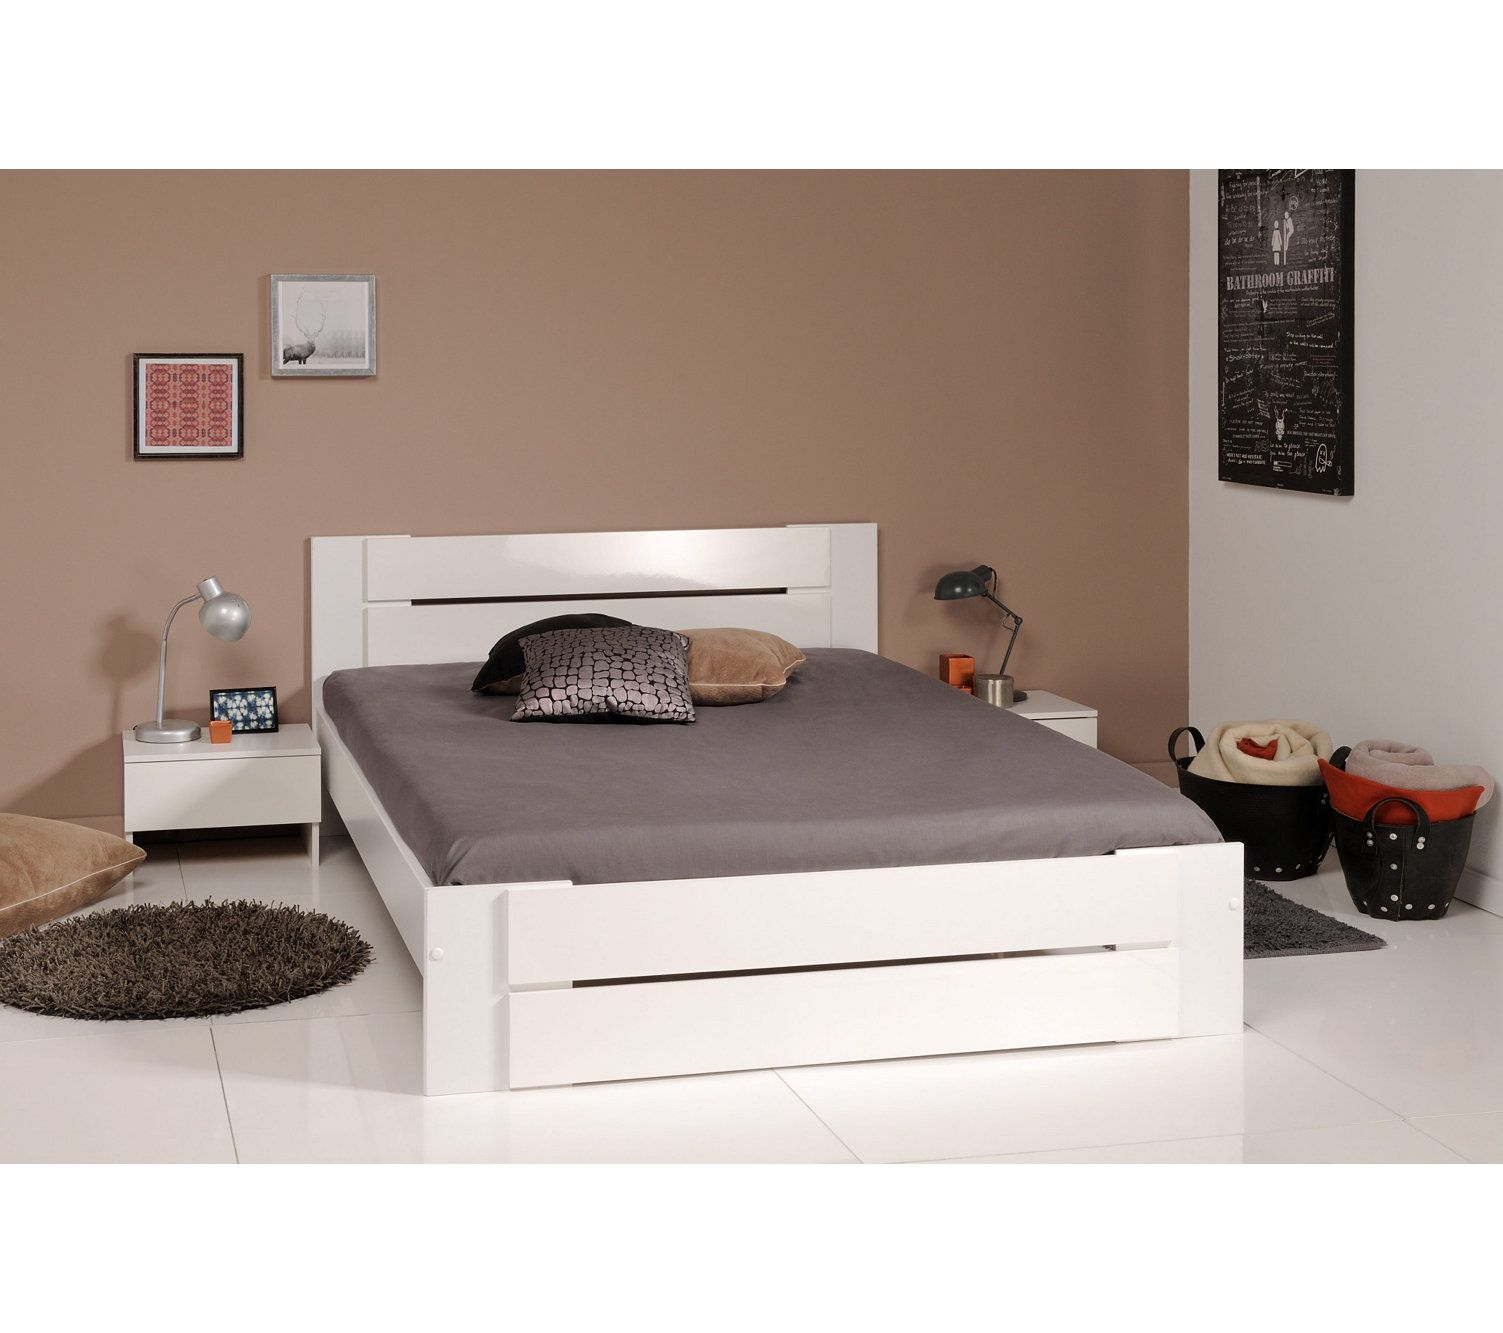 But Lit Japp Blanc Lit 140x190 Cm Bianca Blanc Home Decor Pinterest Bed